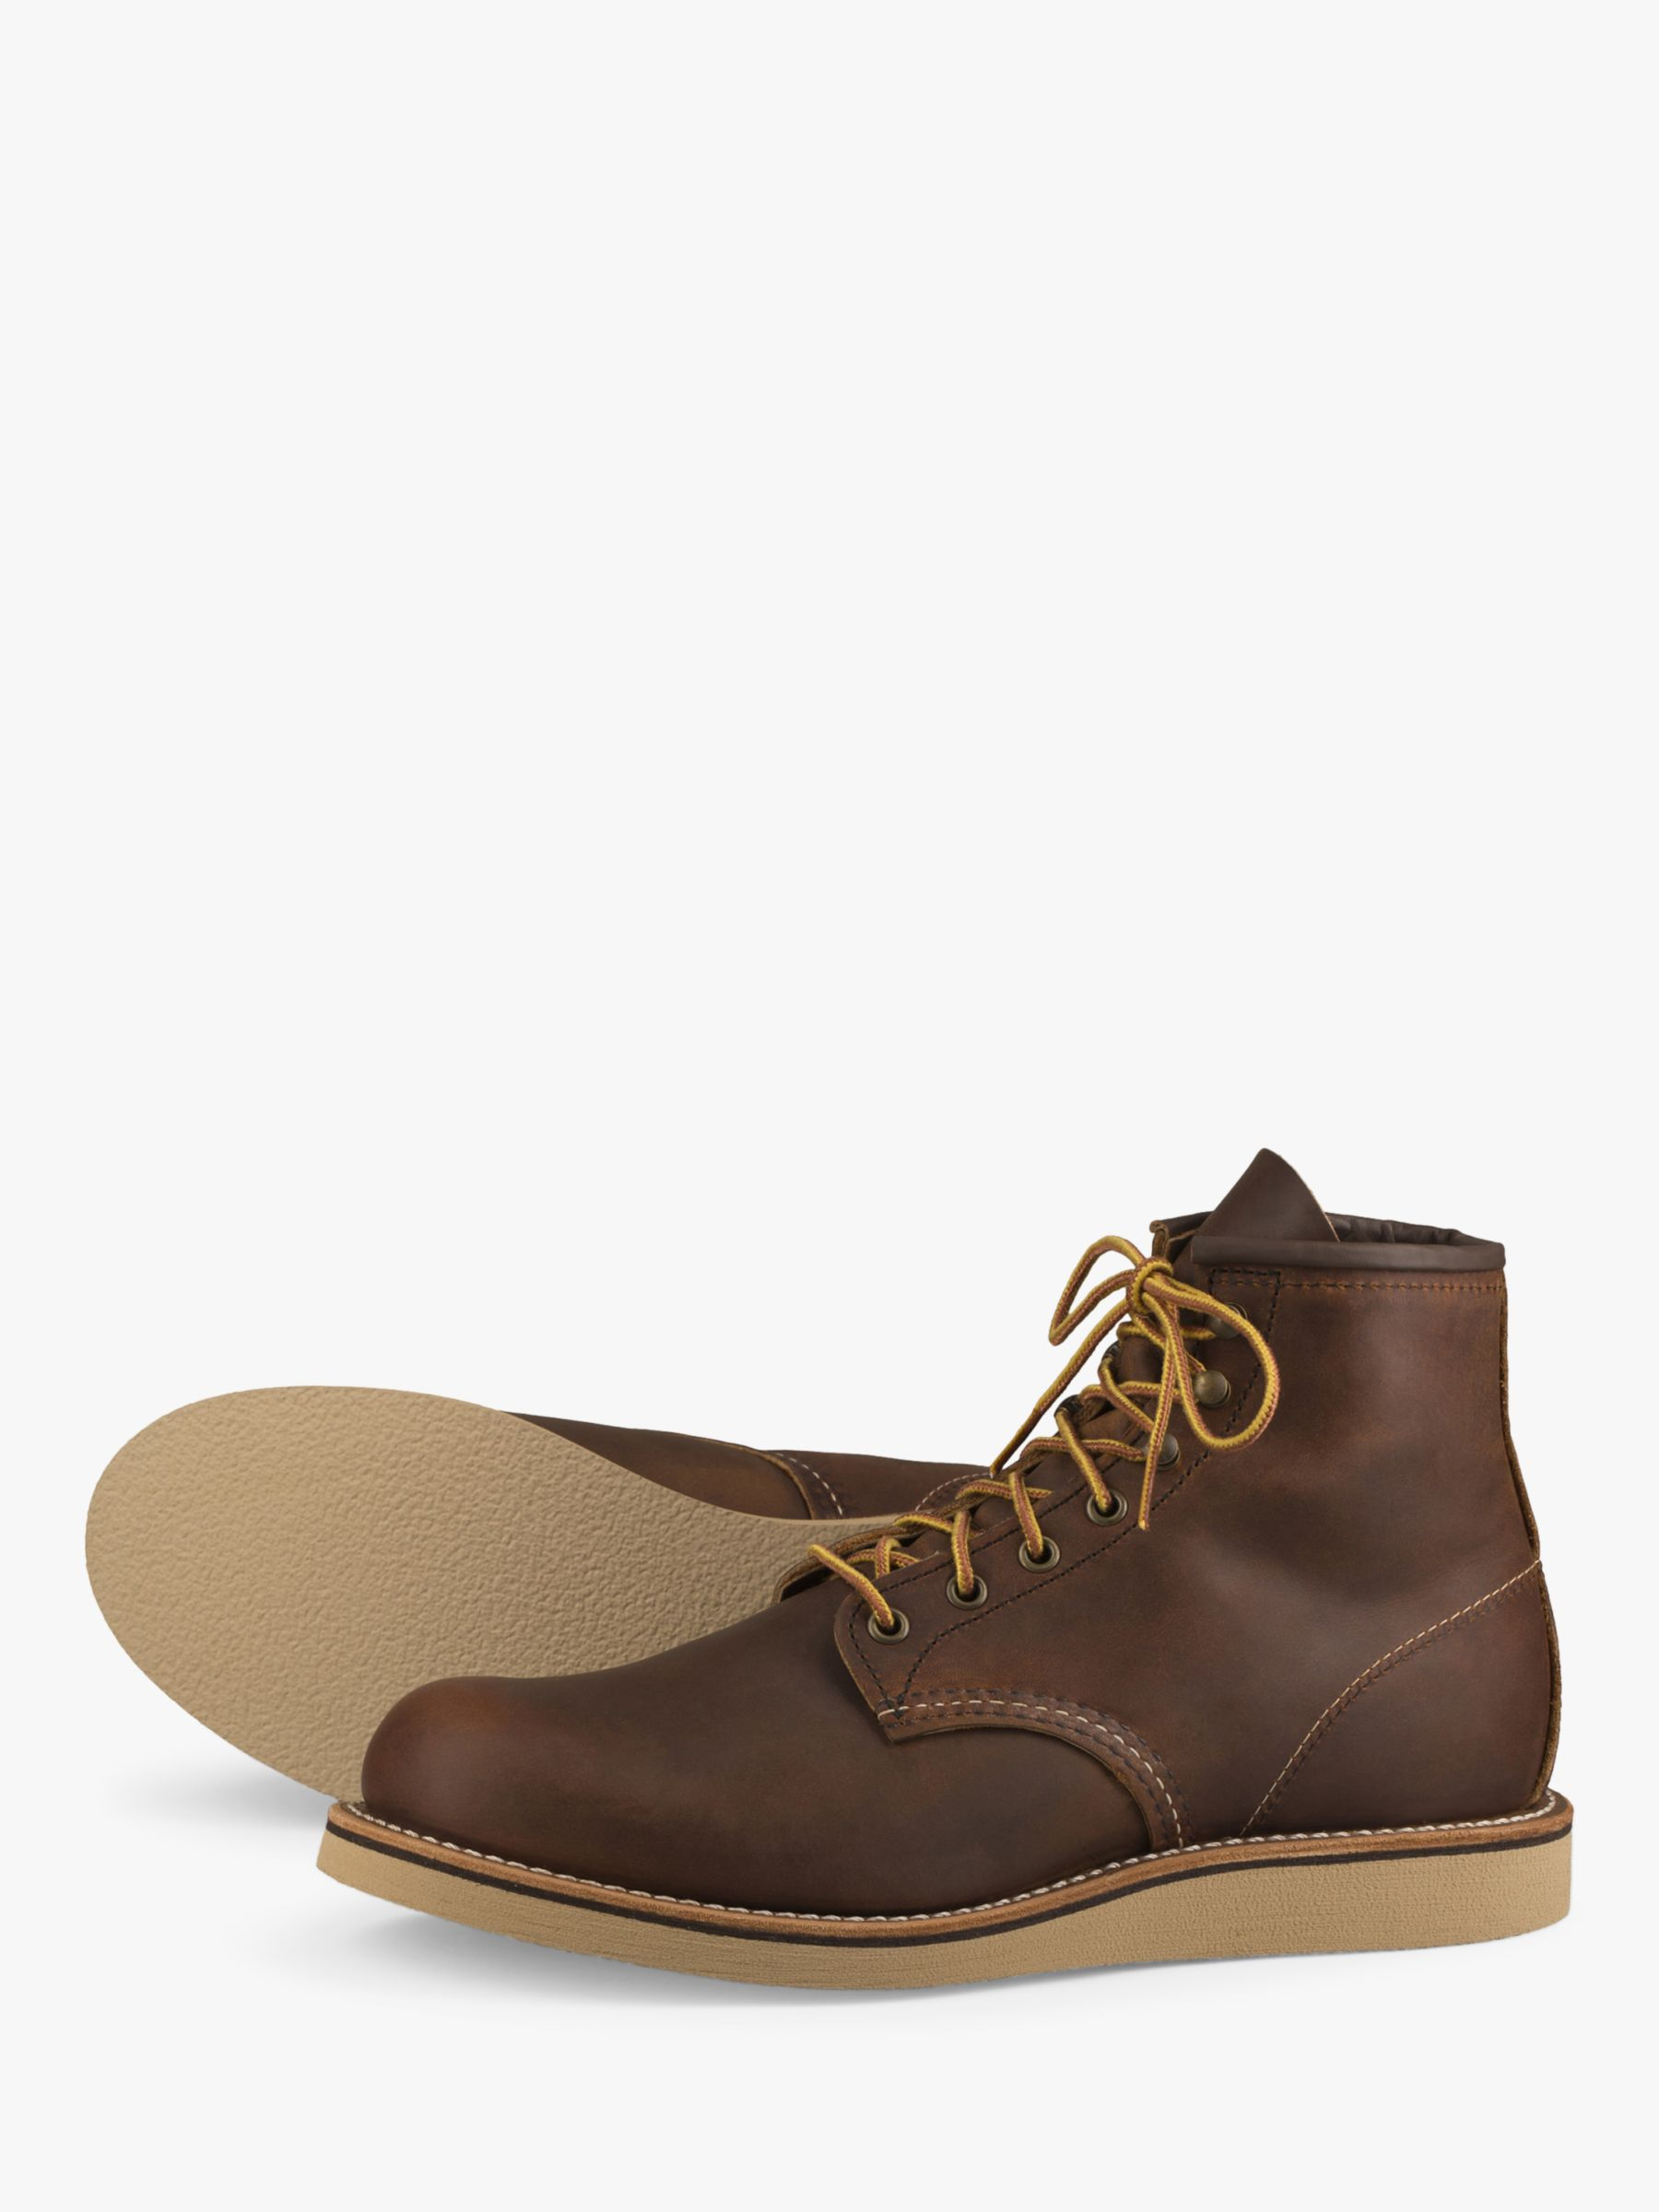 Red Wing Red Wing 2950 Rover Boots, Copper